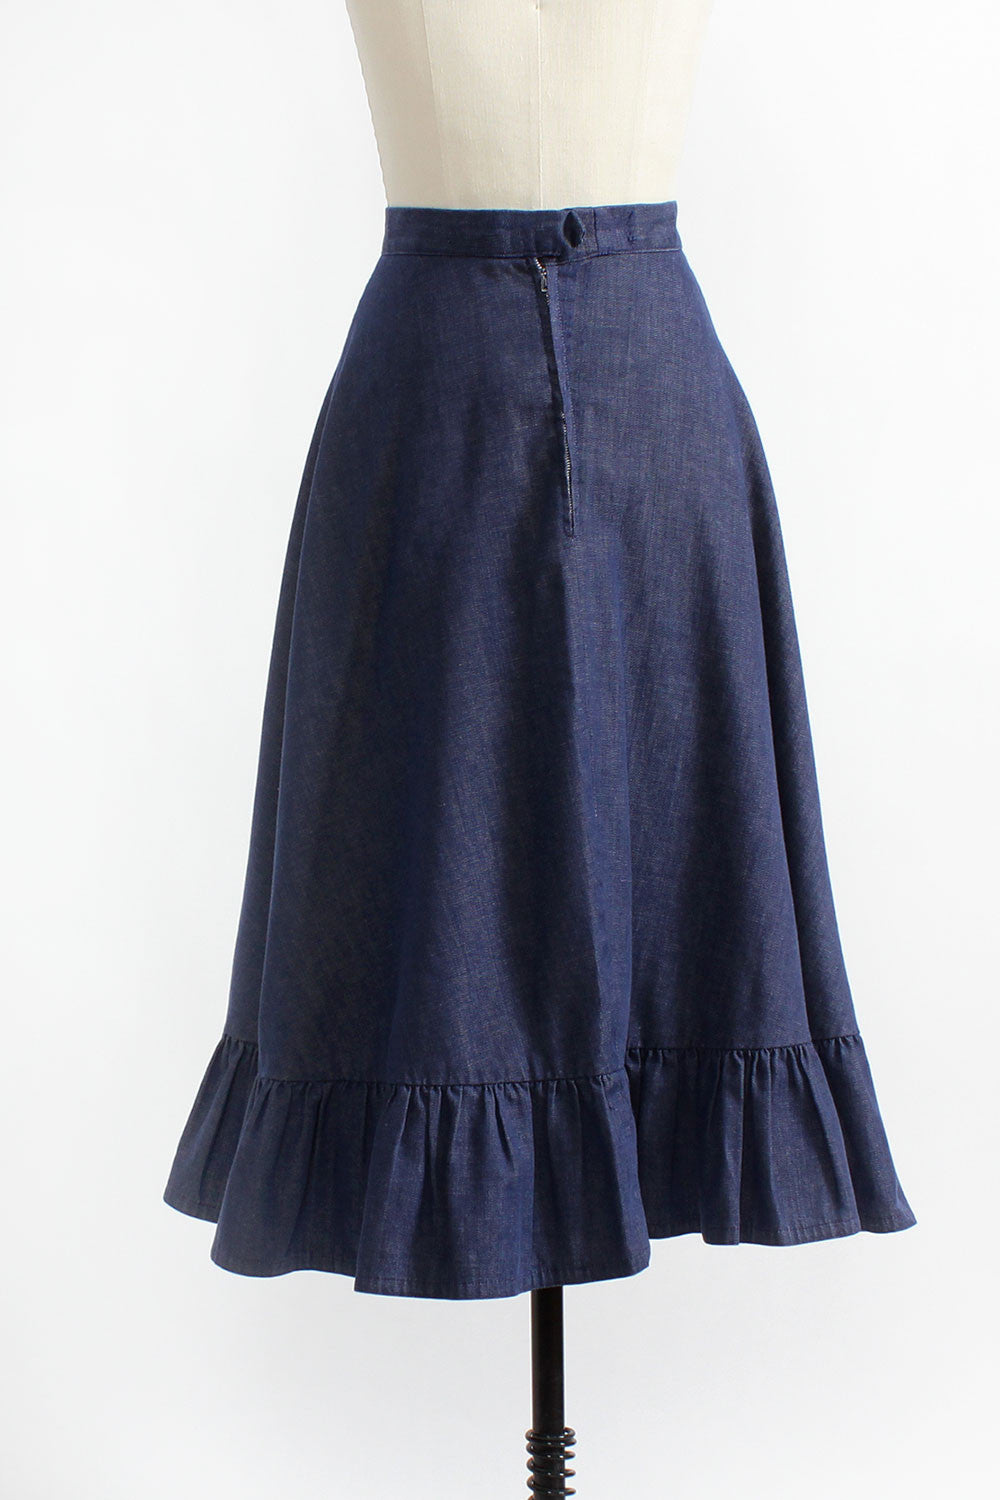 Dark Denim Bias Skirt M